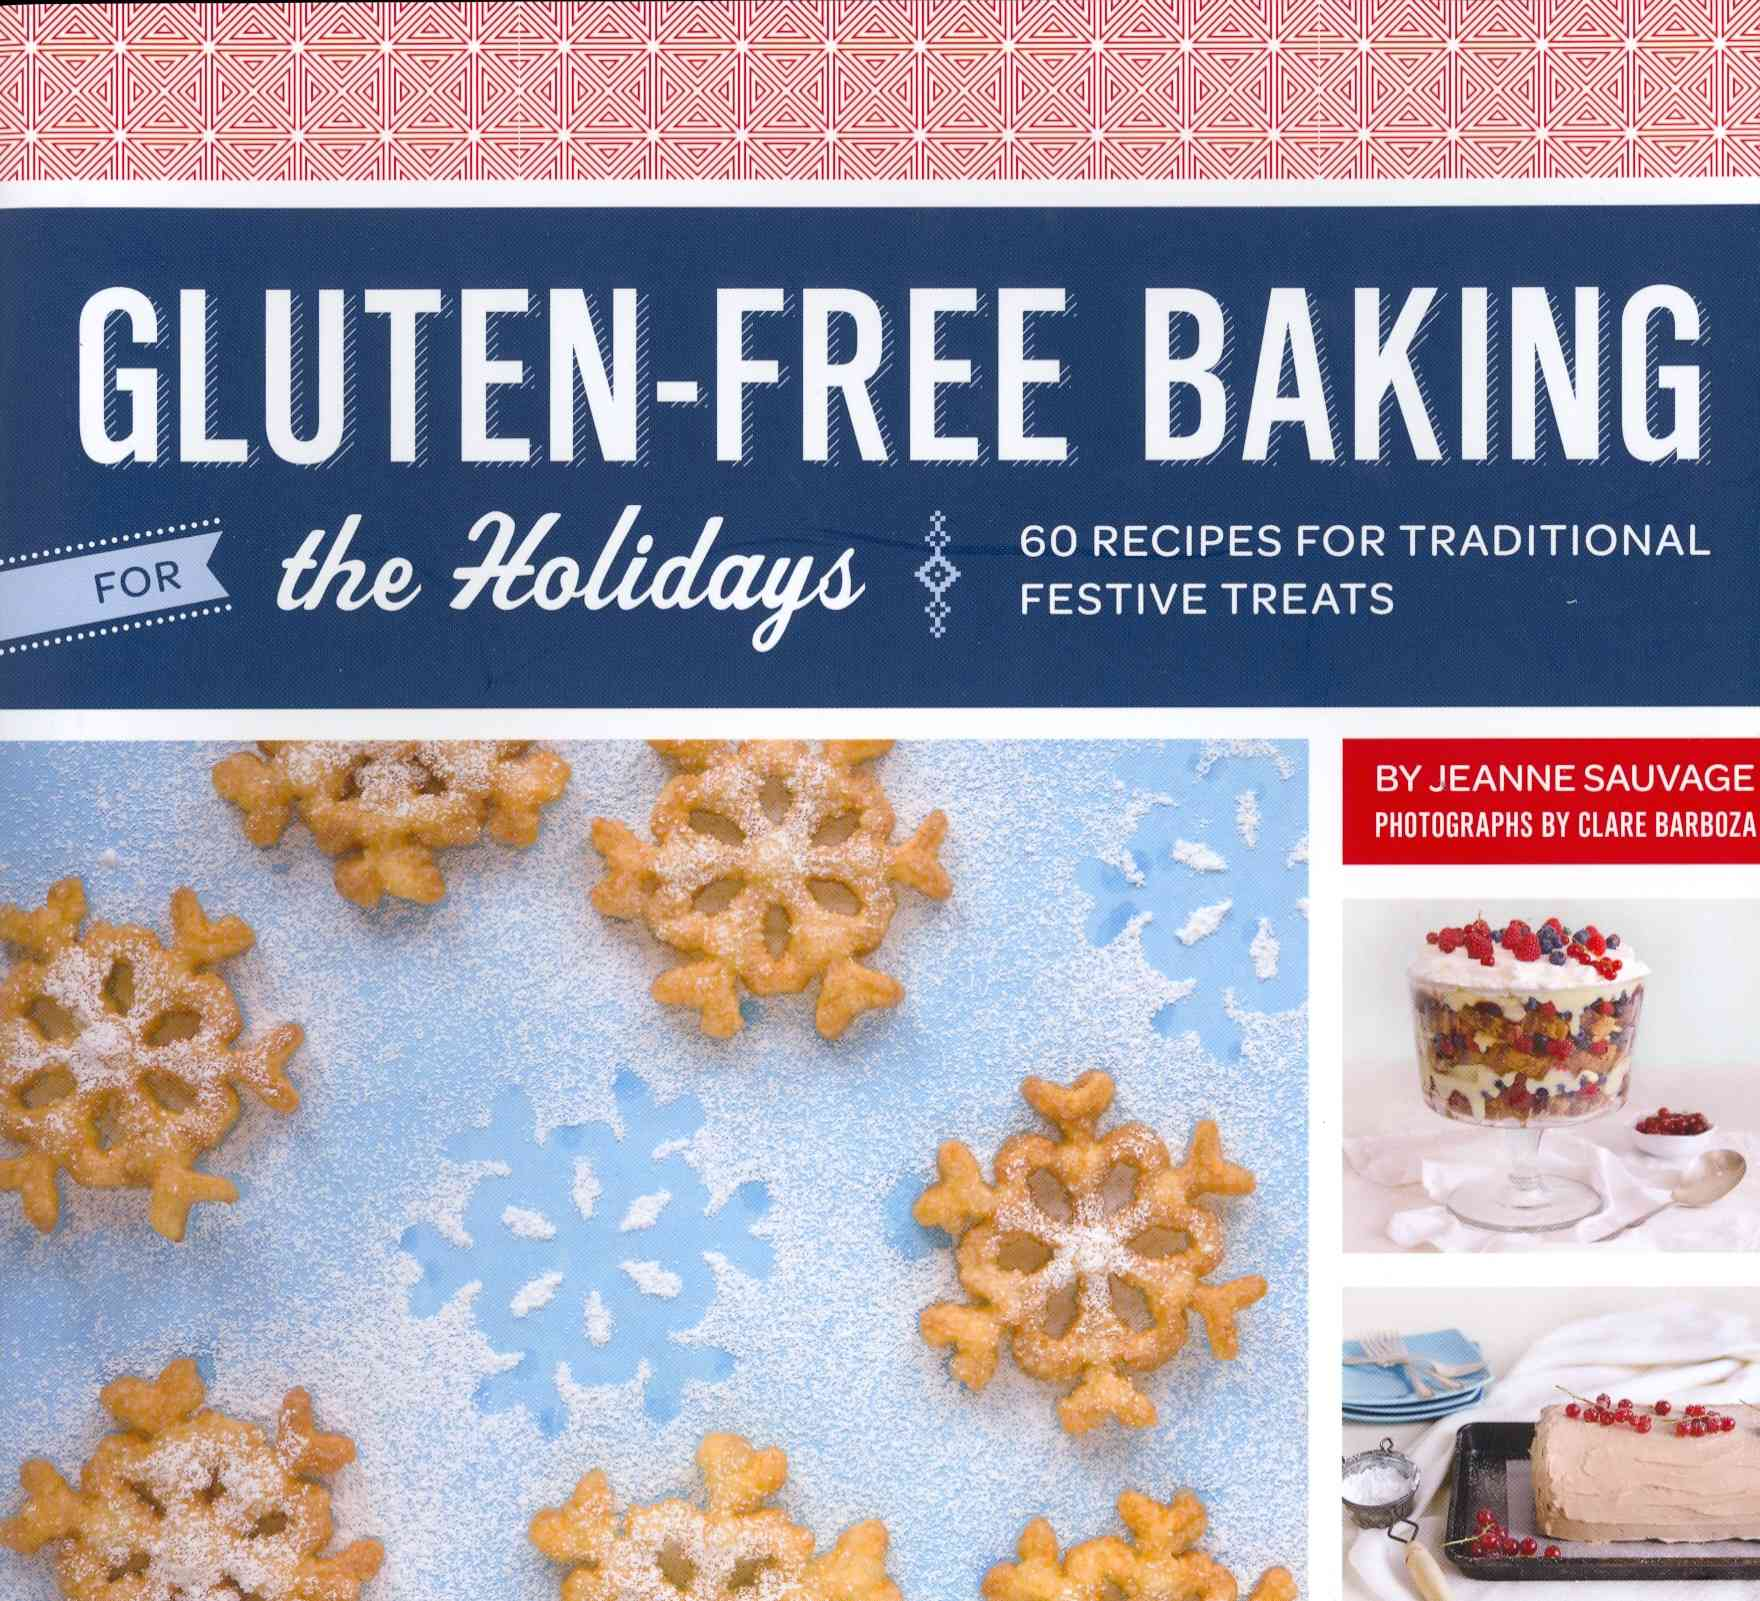 Gluten-Free Baking for the Holidays By Sauvage, Jeanne/ Barboza, Clare (PHT)